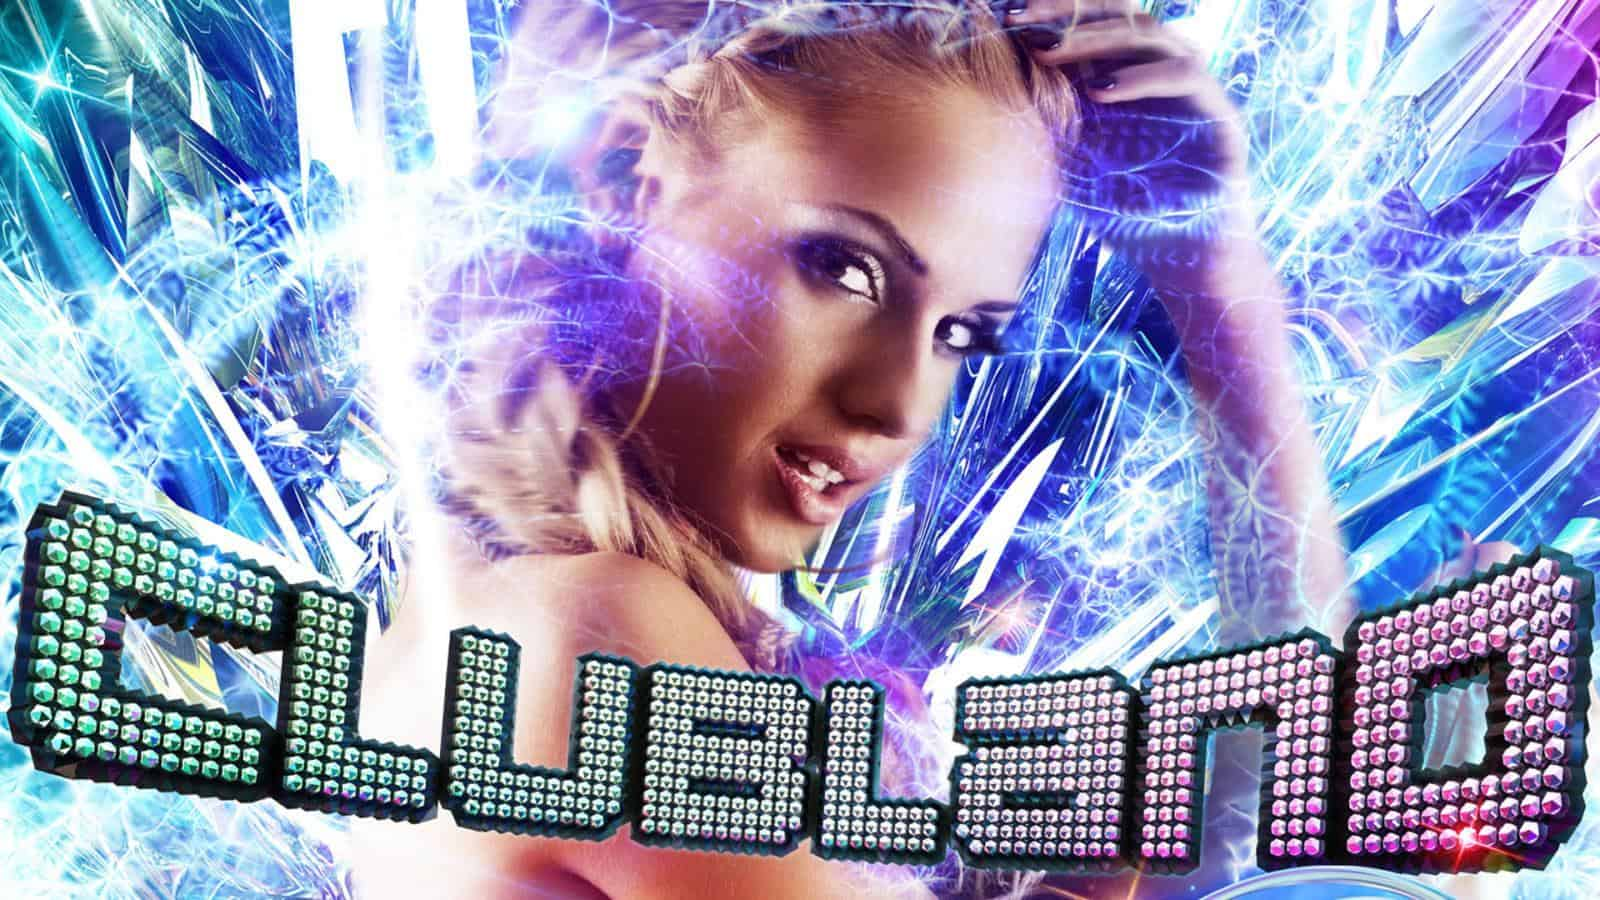 Clubland album artwork